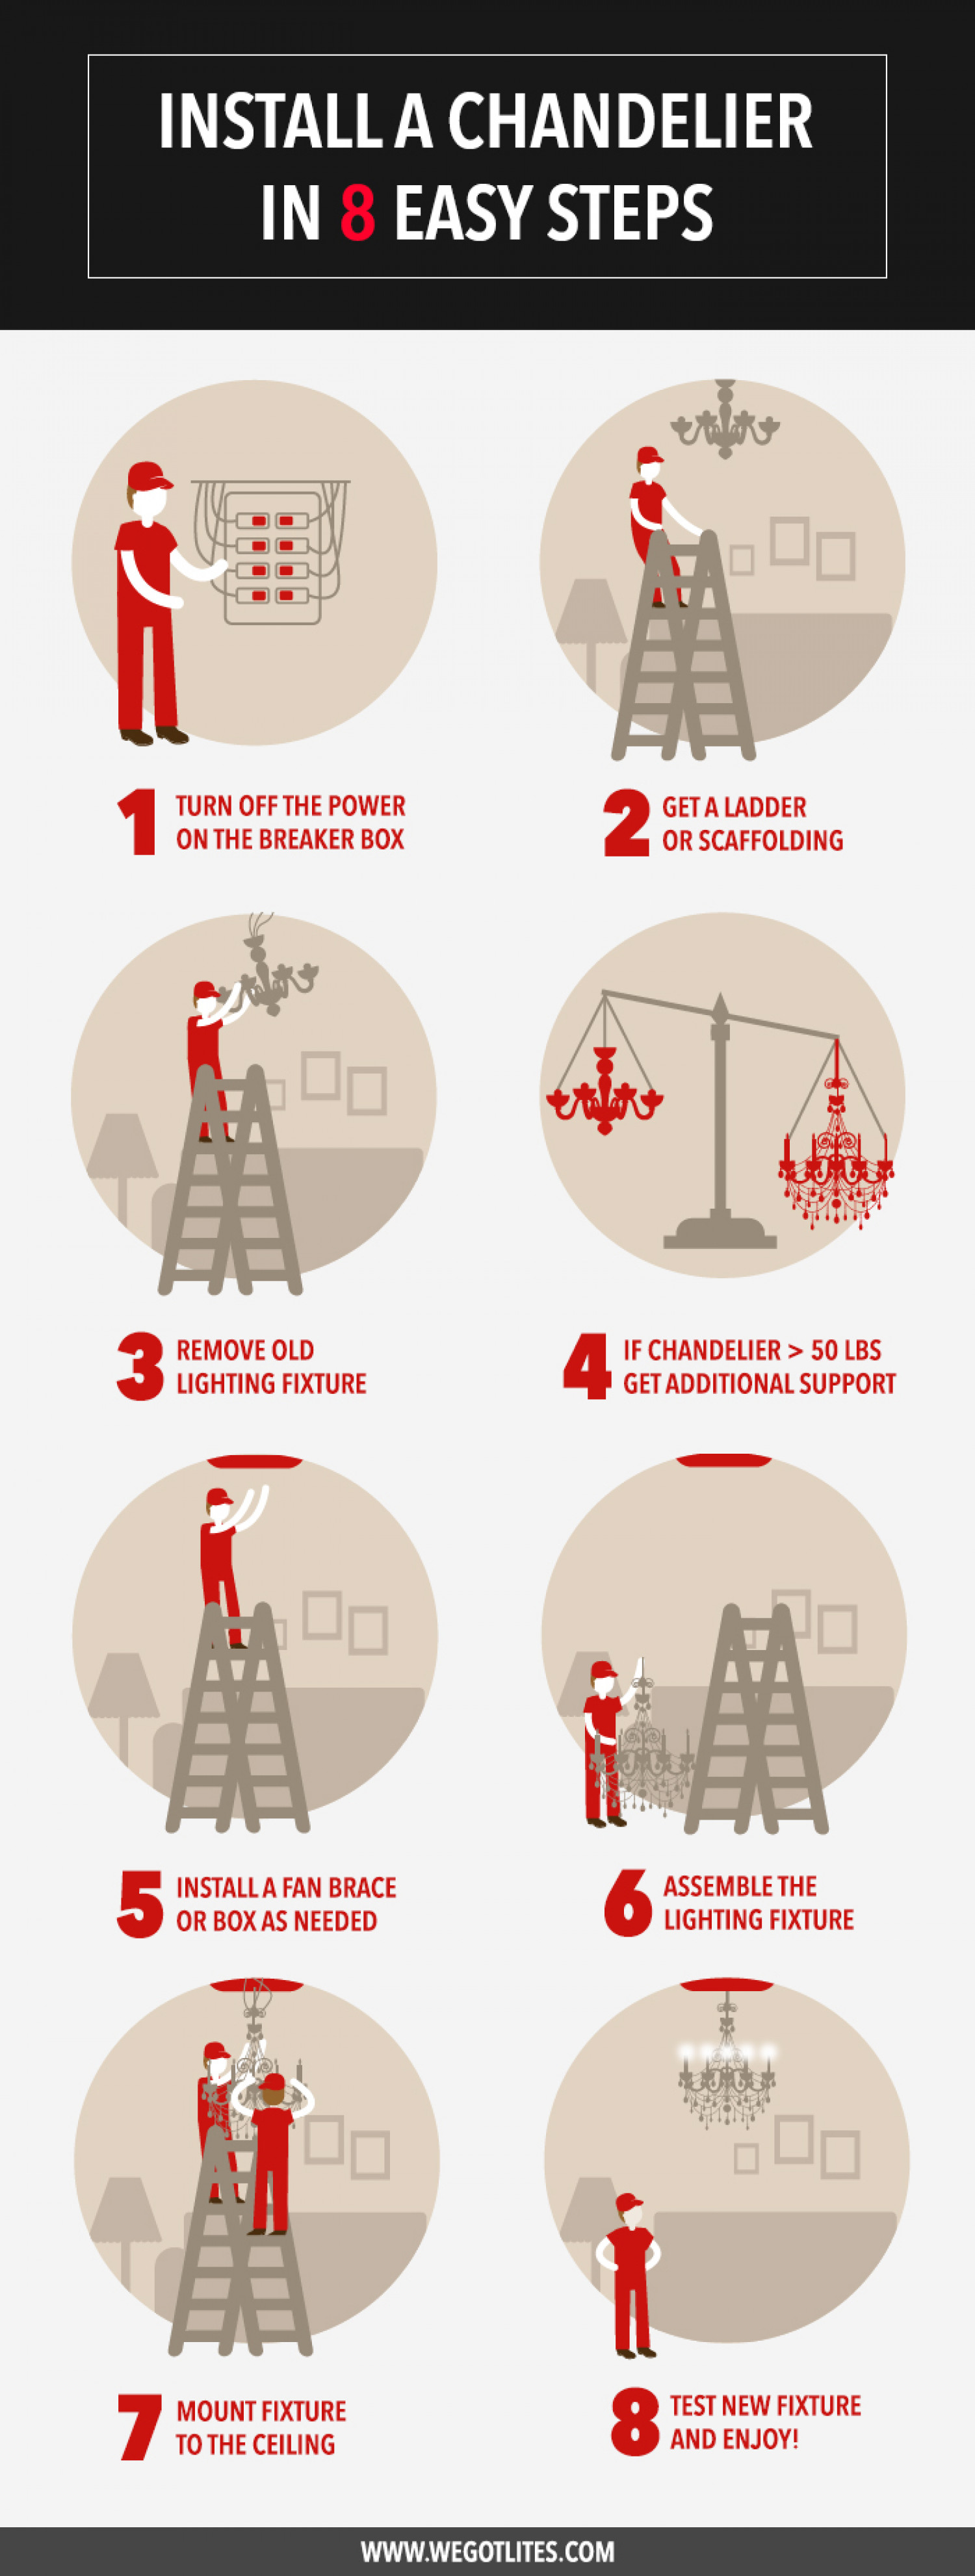 8 Easy Steps To Install A Chandelier Infographic